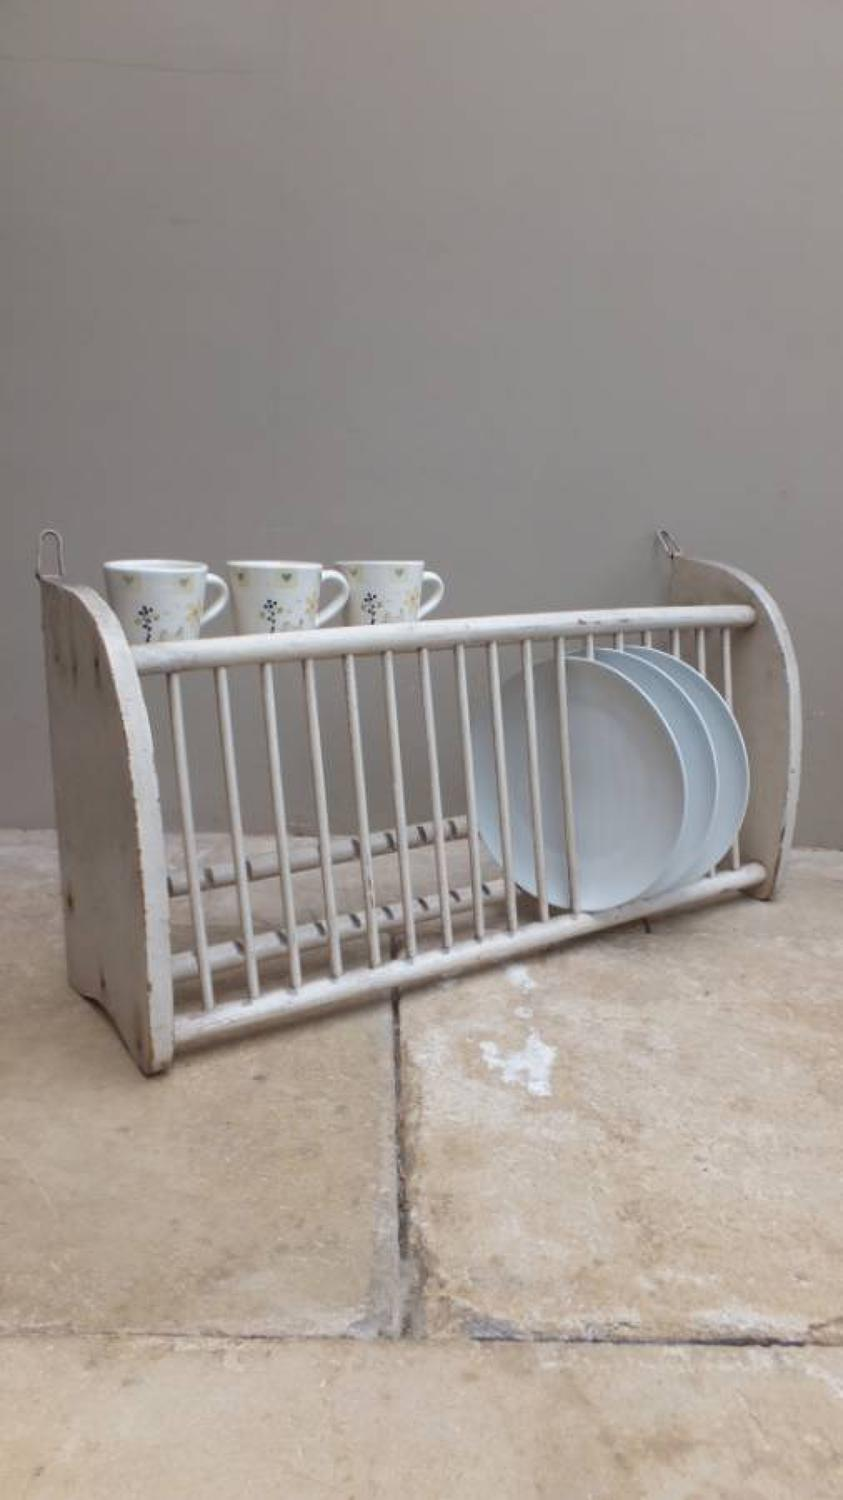 Late Victorian Pine Plate Rack in Original Paint